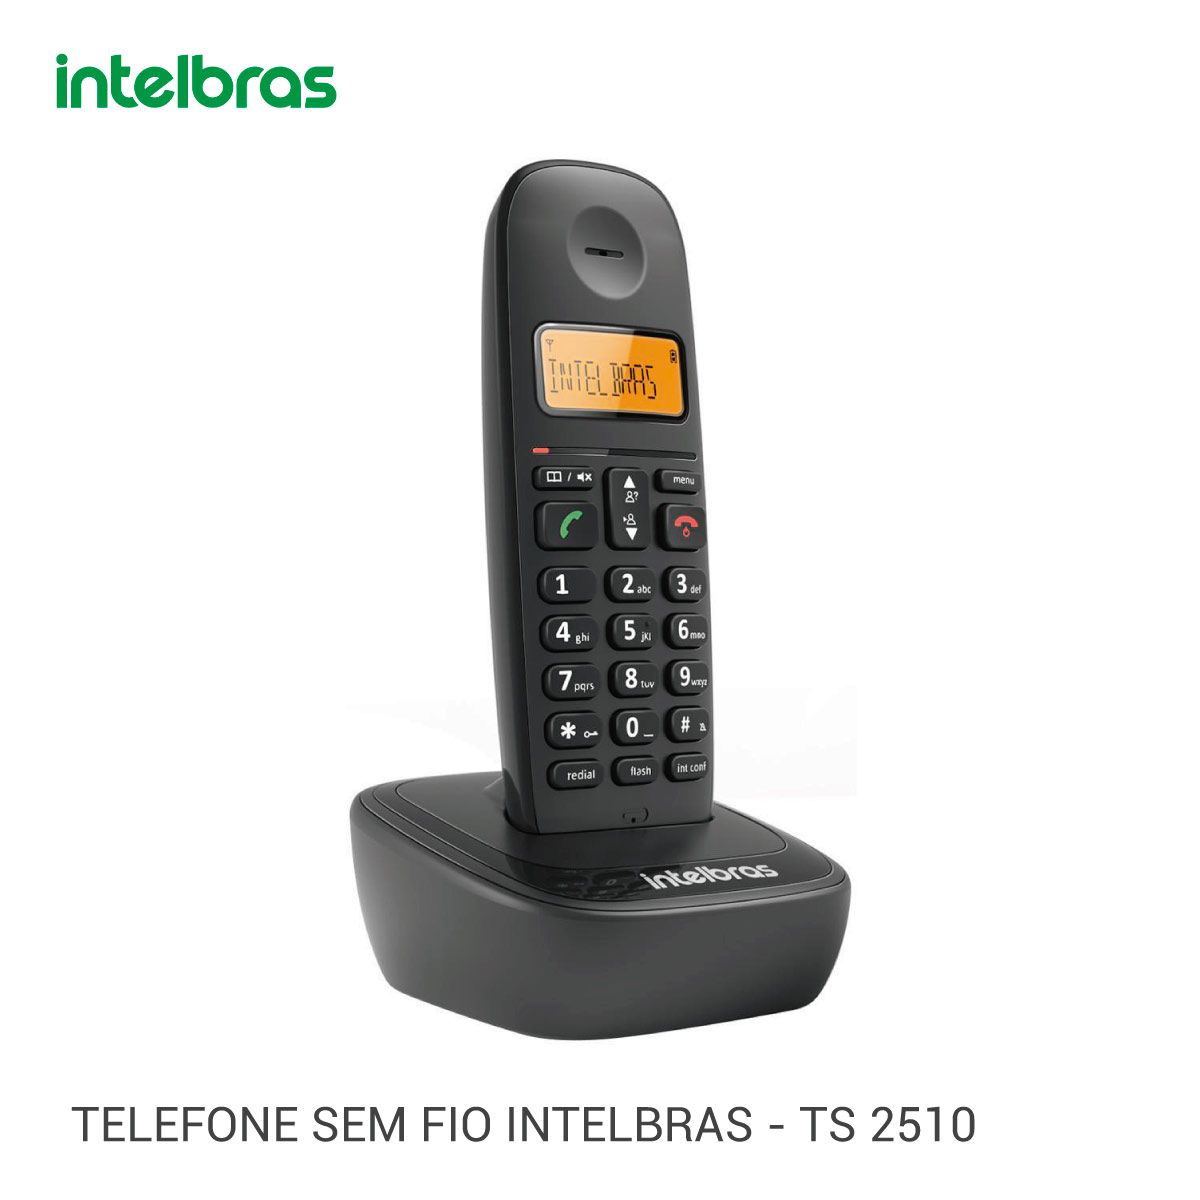 Telefone Sem Fio Intelbras Ts2510 Display Id. Digital